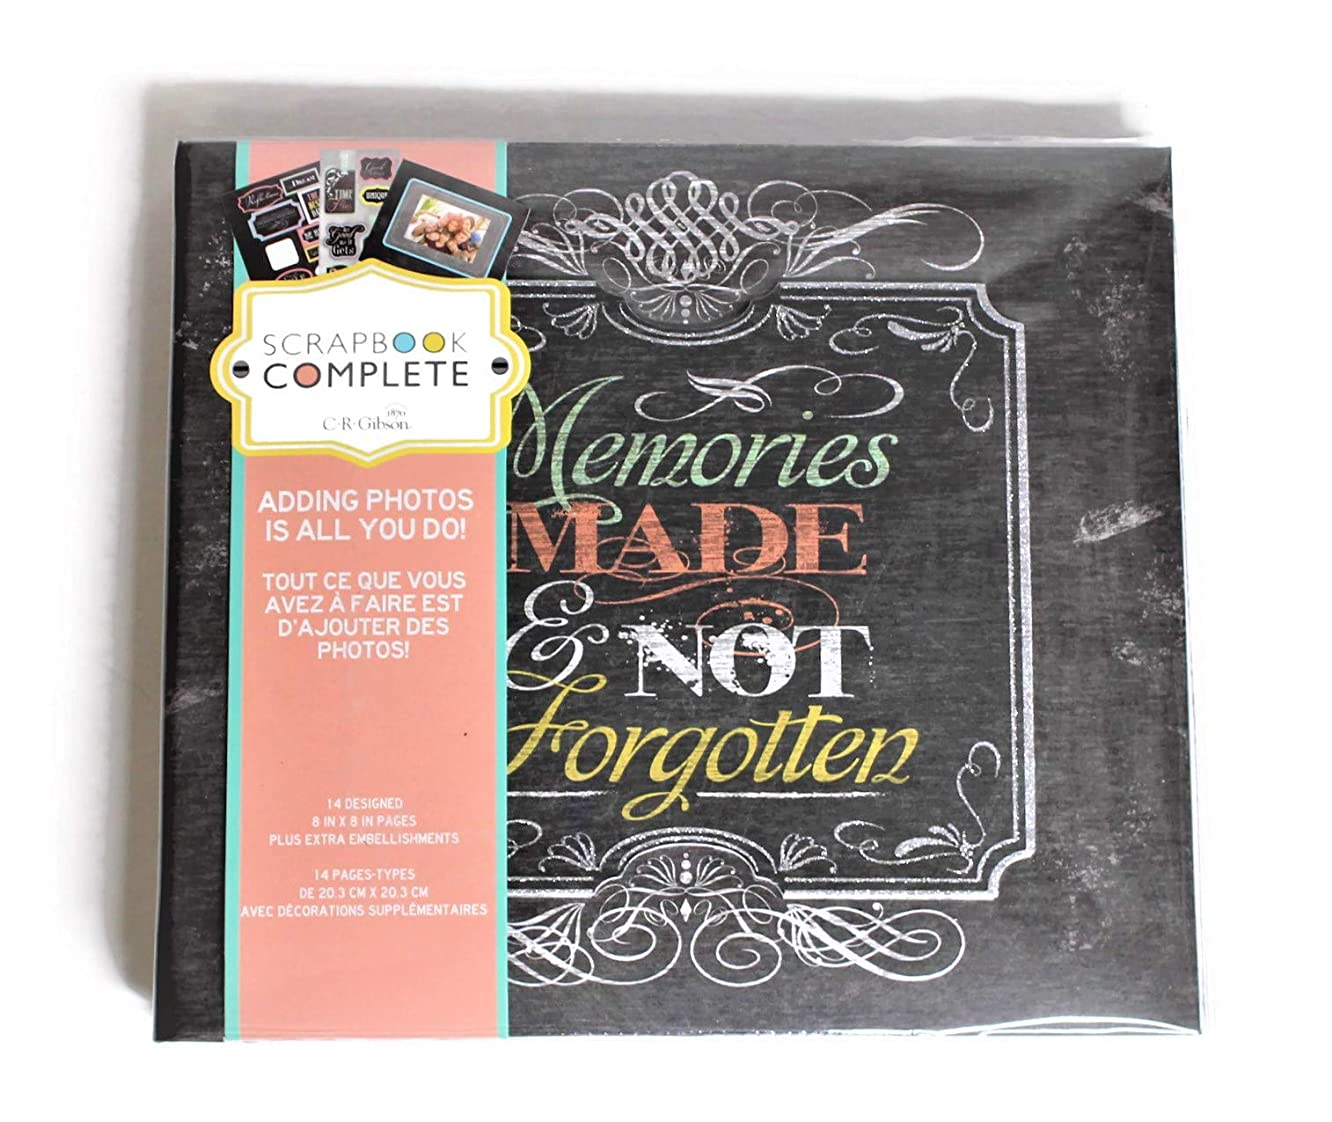 Tapestry Memories Themed, Keep Memories of Your Life Love Travel Happiness, Premade Scrapbook Post Bound Photo Album 8